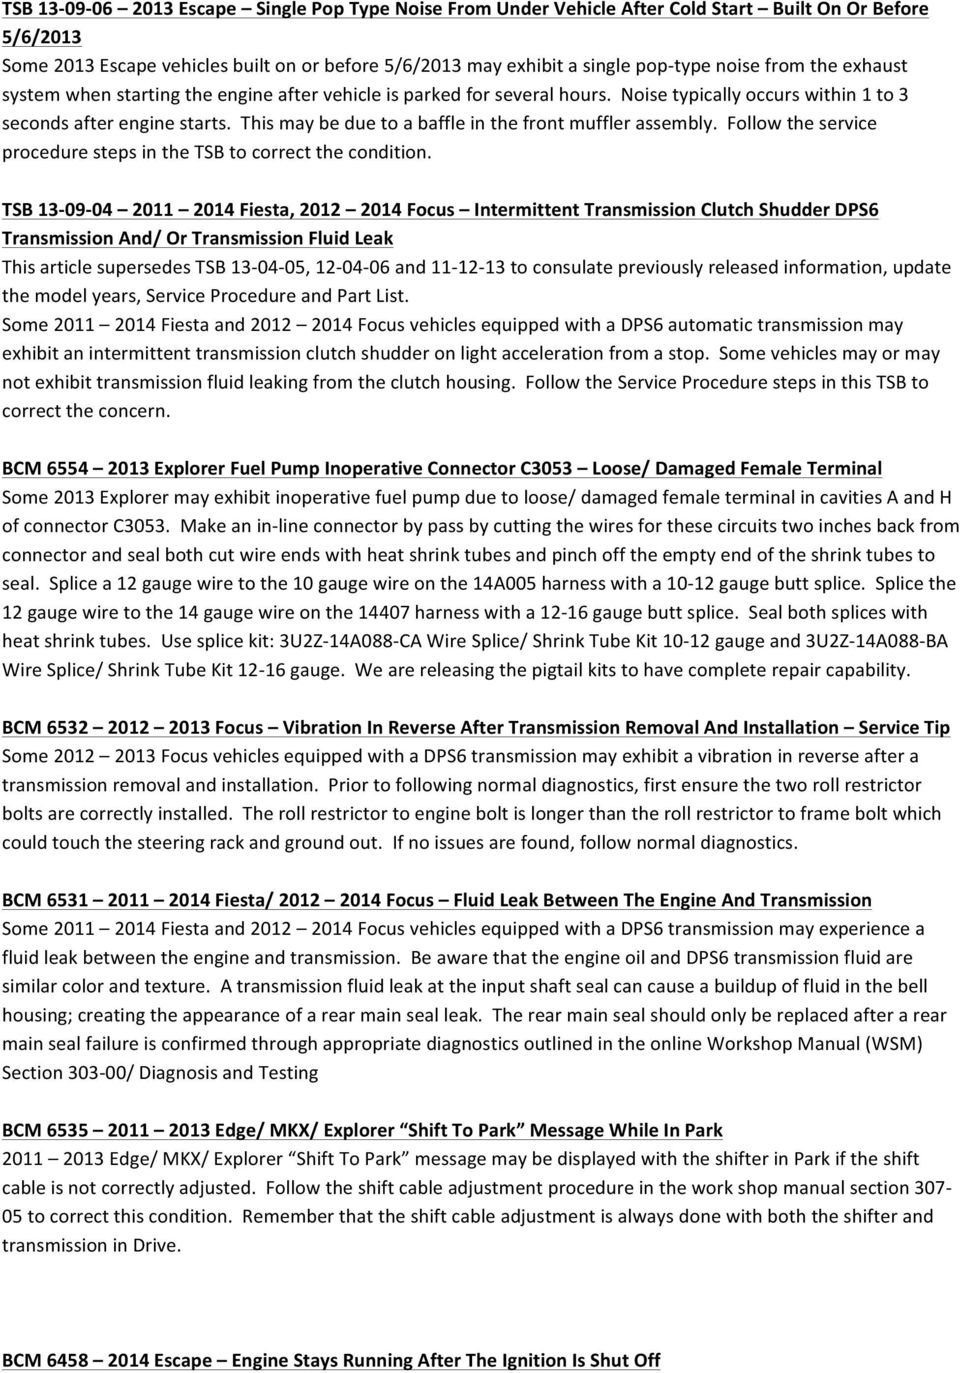 SERVICE MESSAGES & BULLENTINS MAY - SEPTEMBER 2013 CAR/SUV LINES - PDF